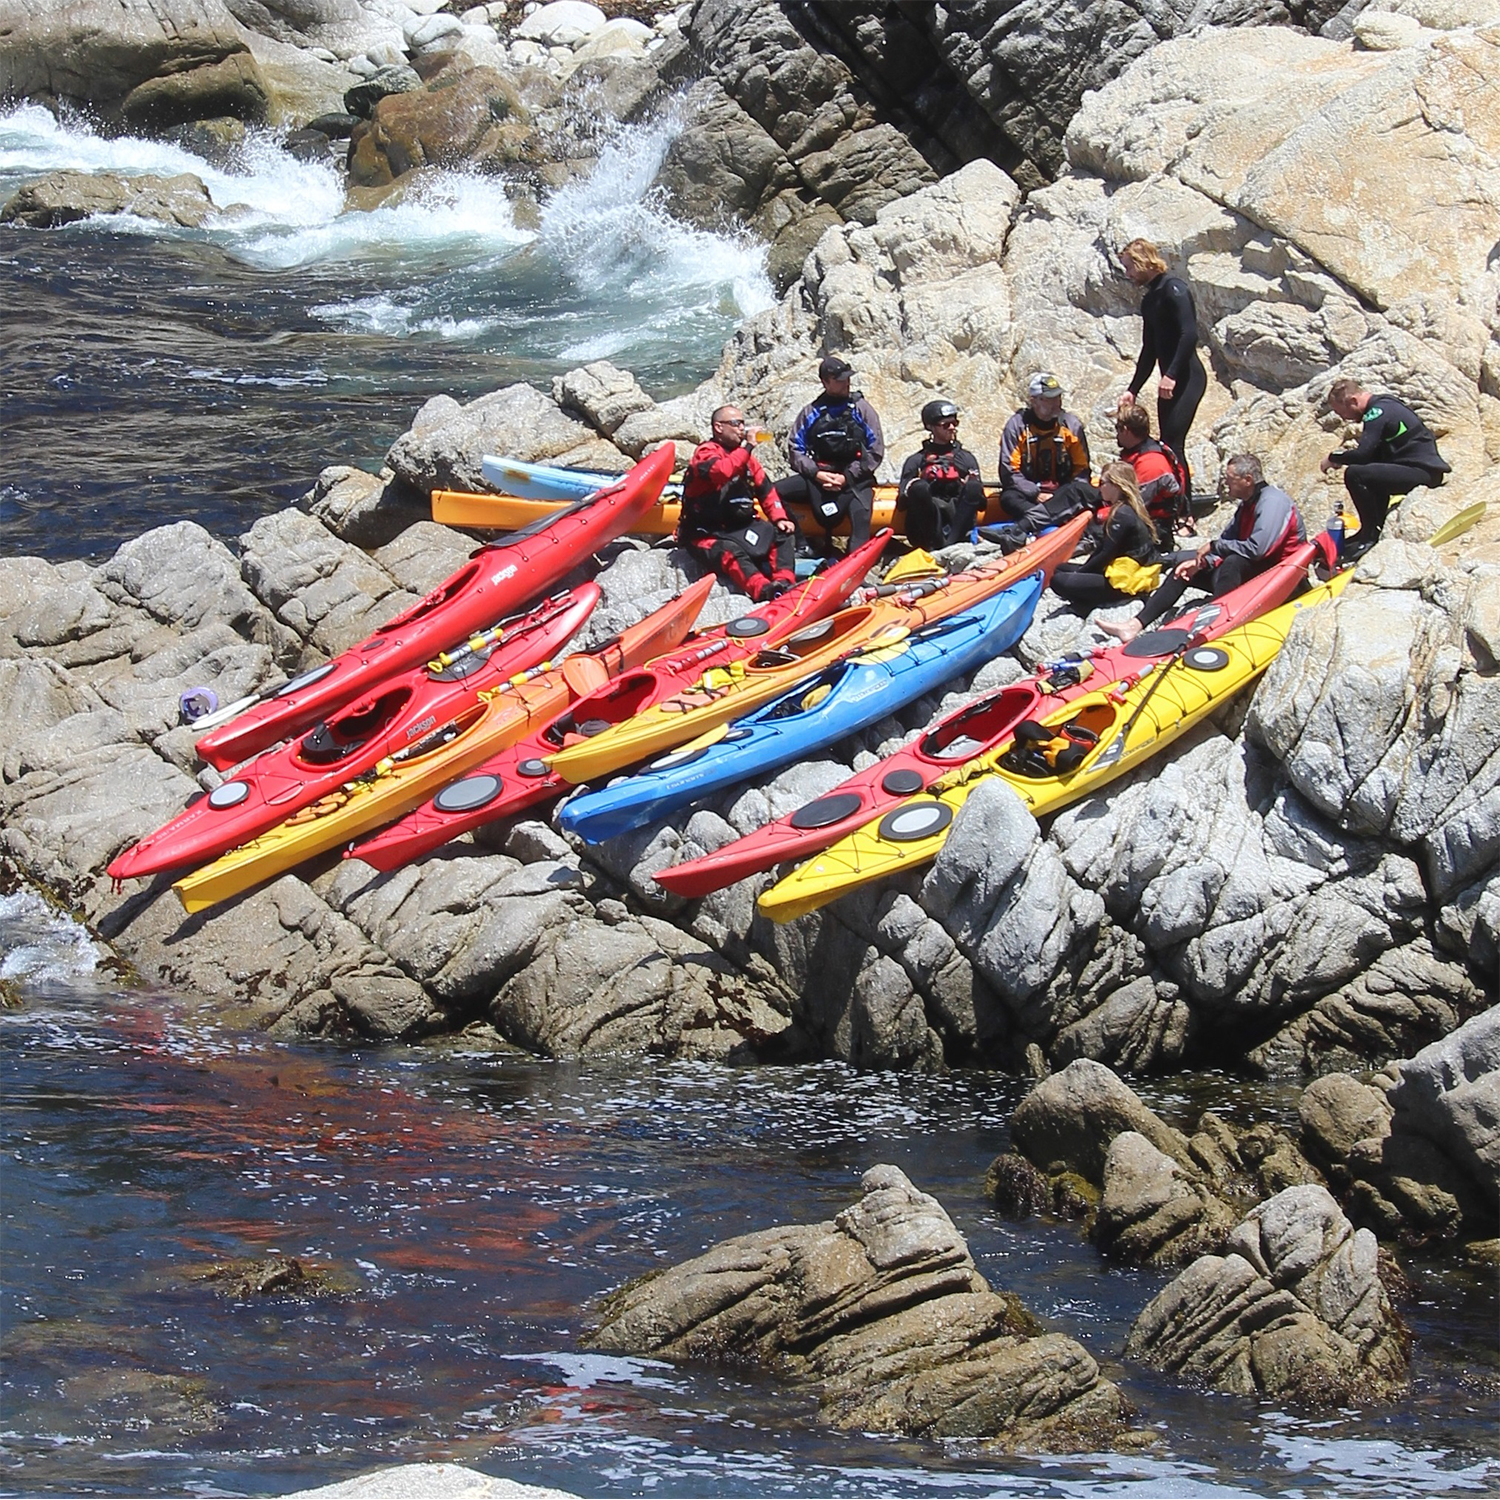 Sea kayaking and stand up paddle boarding rentals, sales, lessons and tours